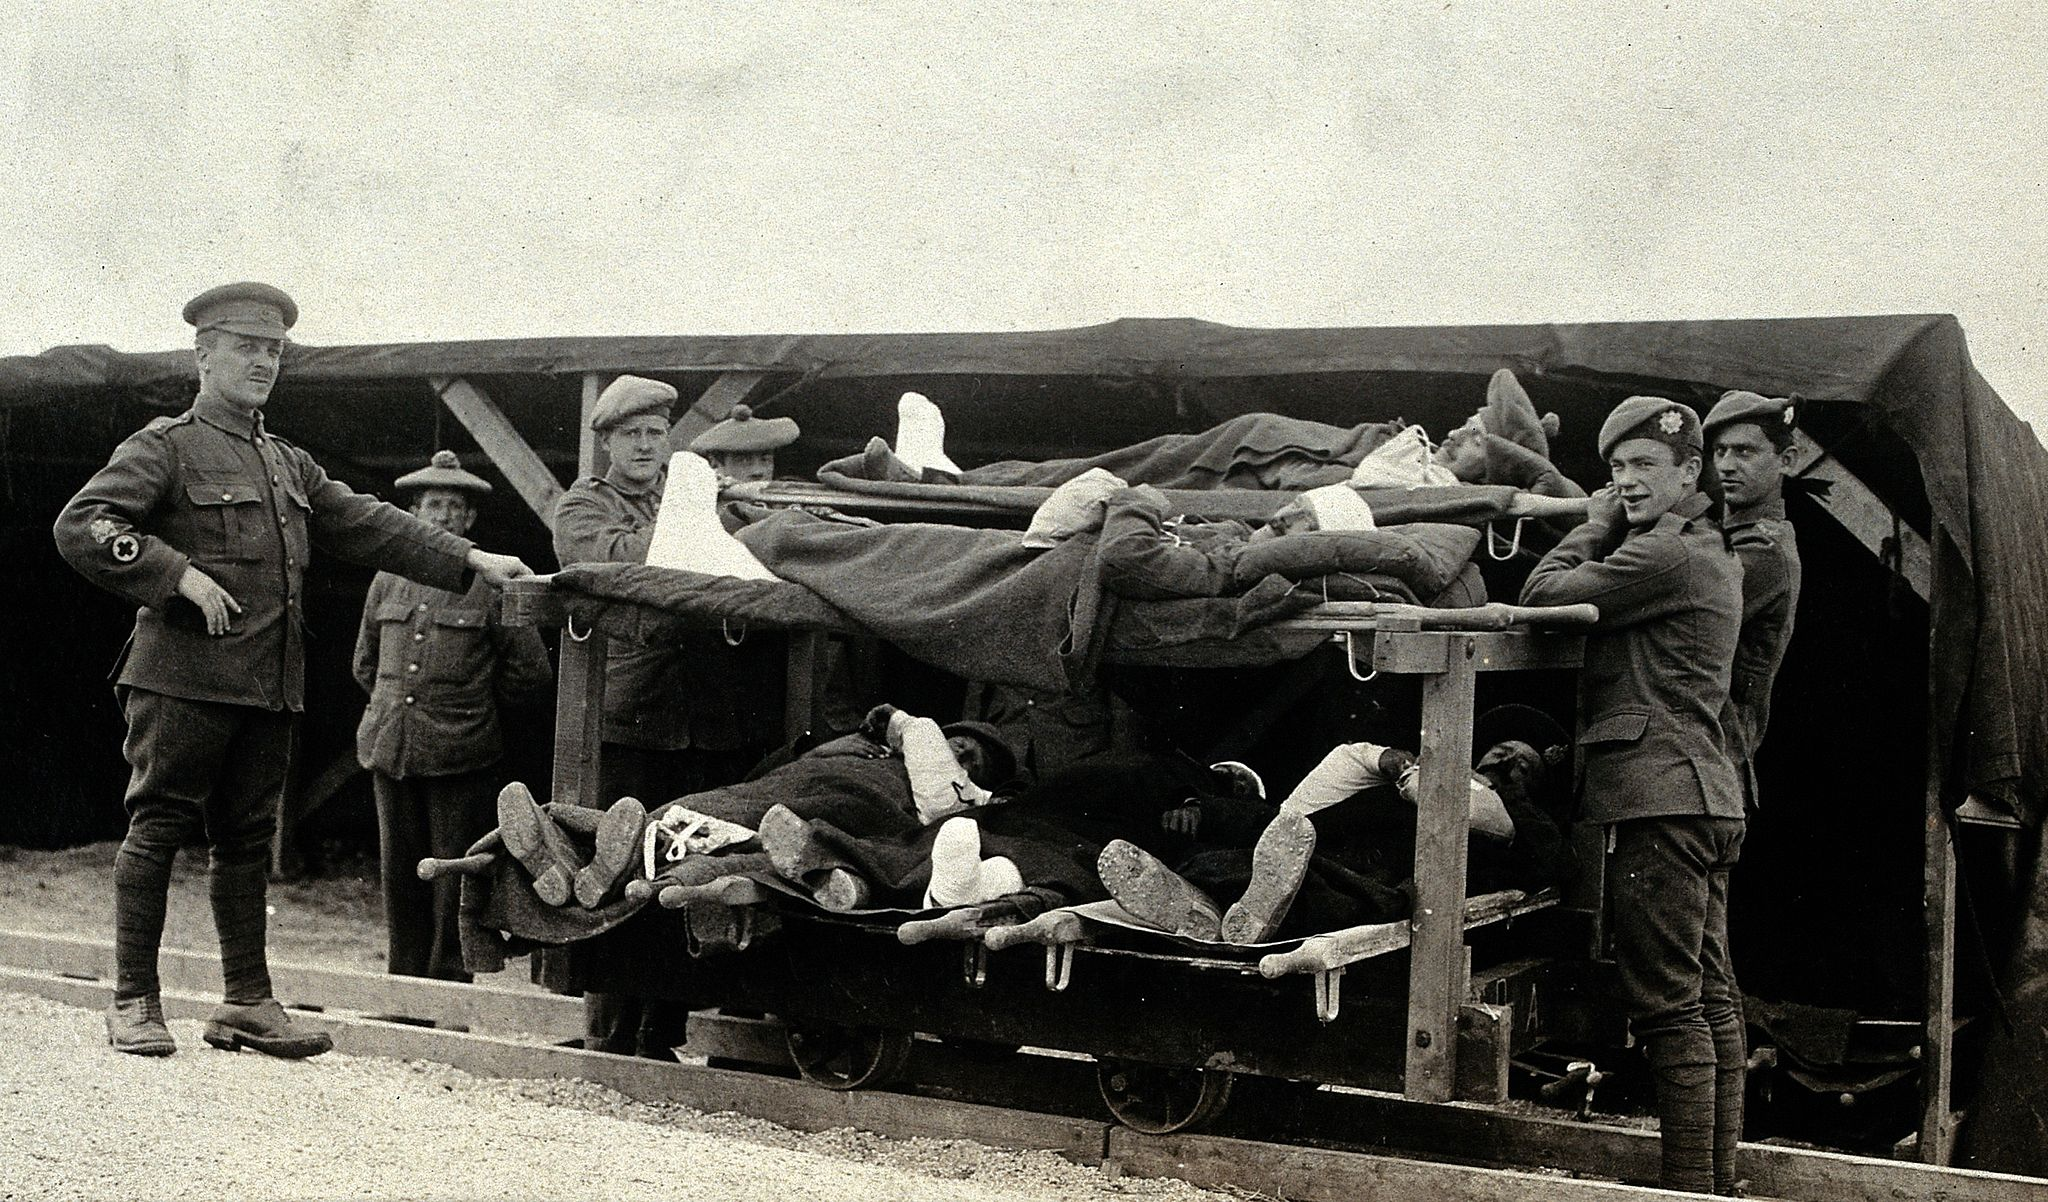 WWI; Pushvillers, France; wounded soldiers on a trolley Wellcome V0030779